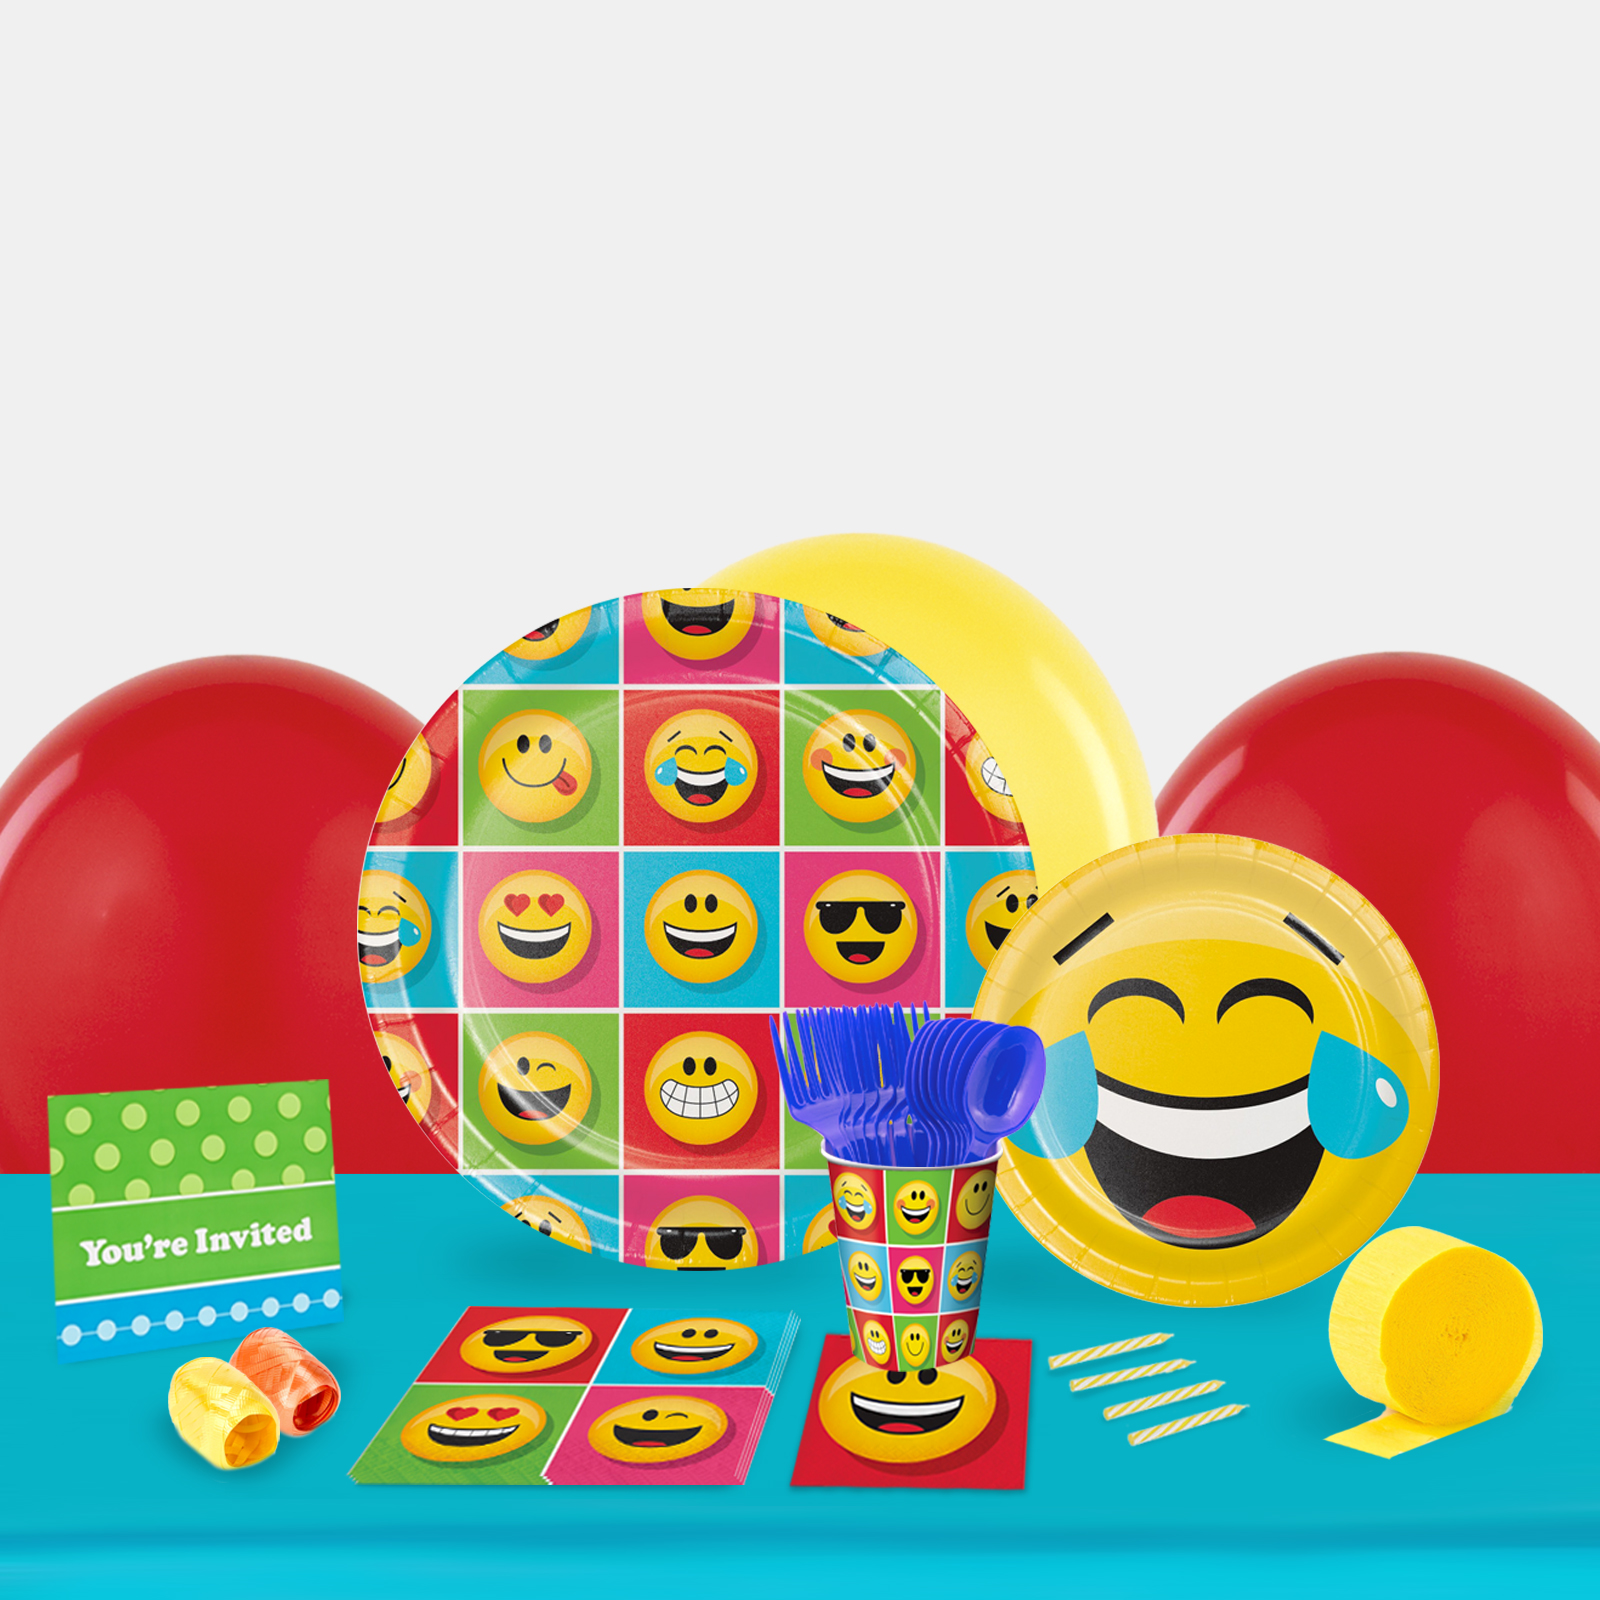 Show Your Emojions Party in a Box-Basic